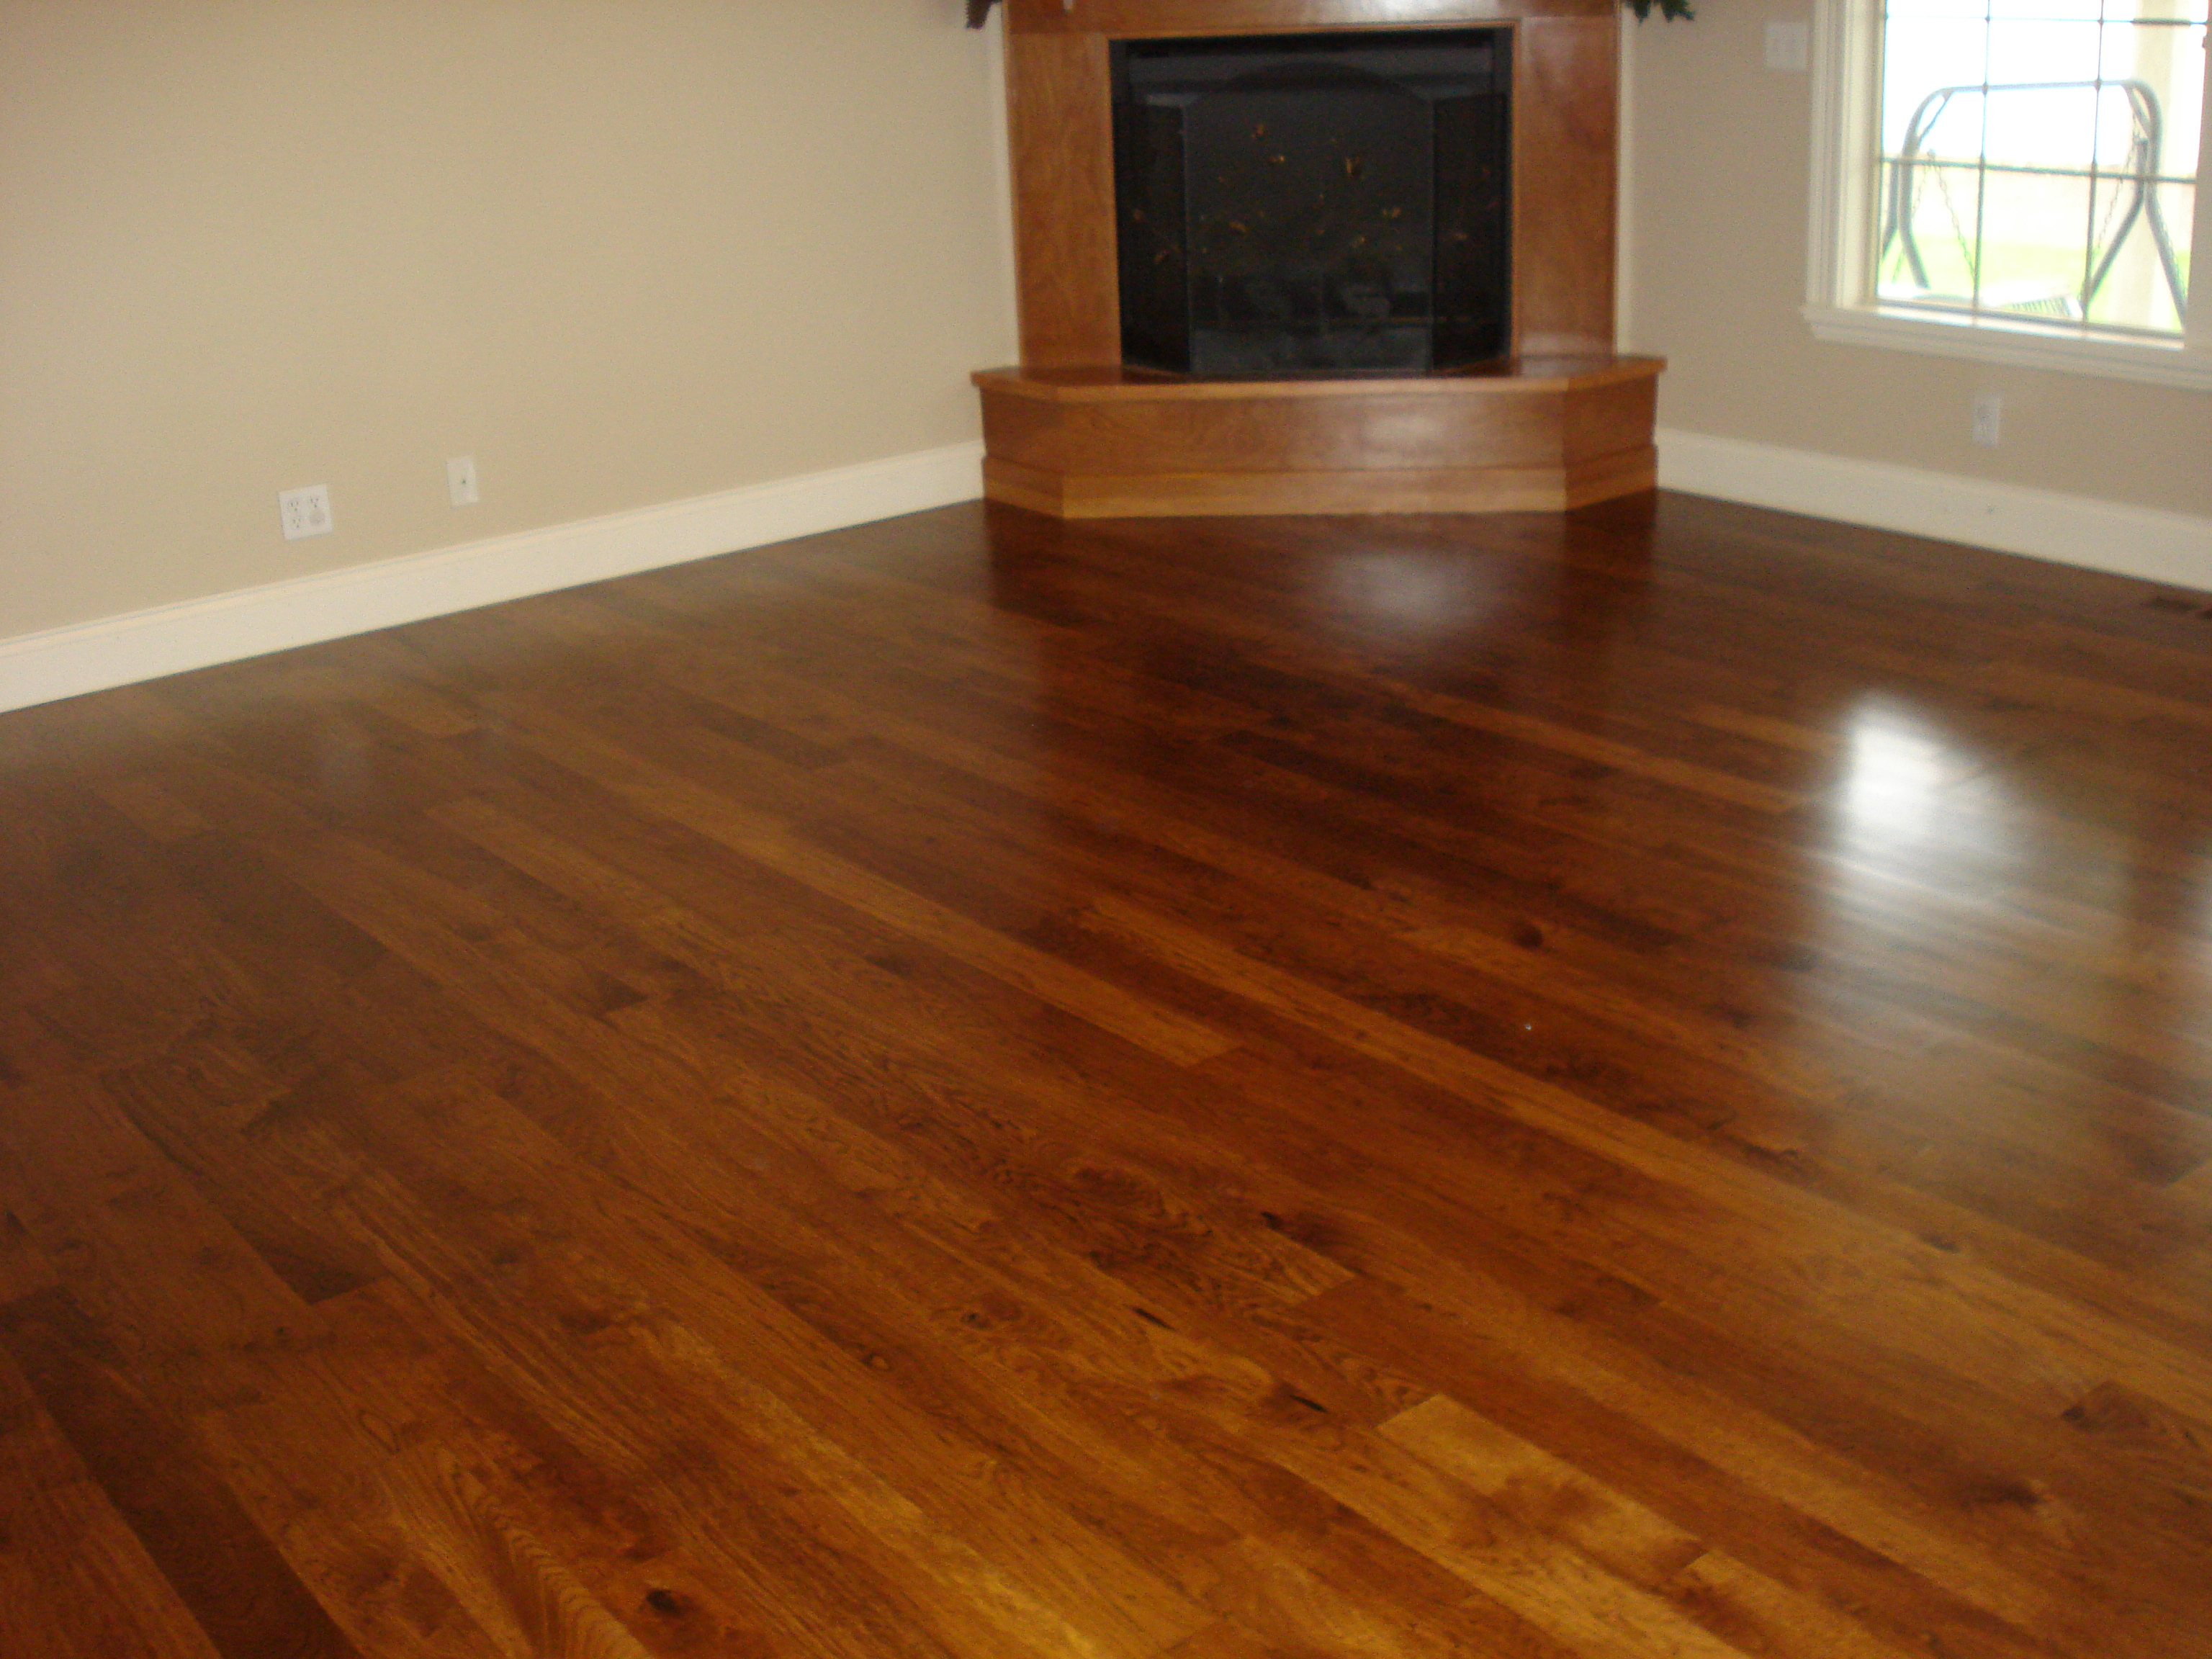 Living Room Pictures Of Rooms With Hardwood Floors carsons custom hardwood floors utah flooring rooms empty room floor